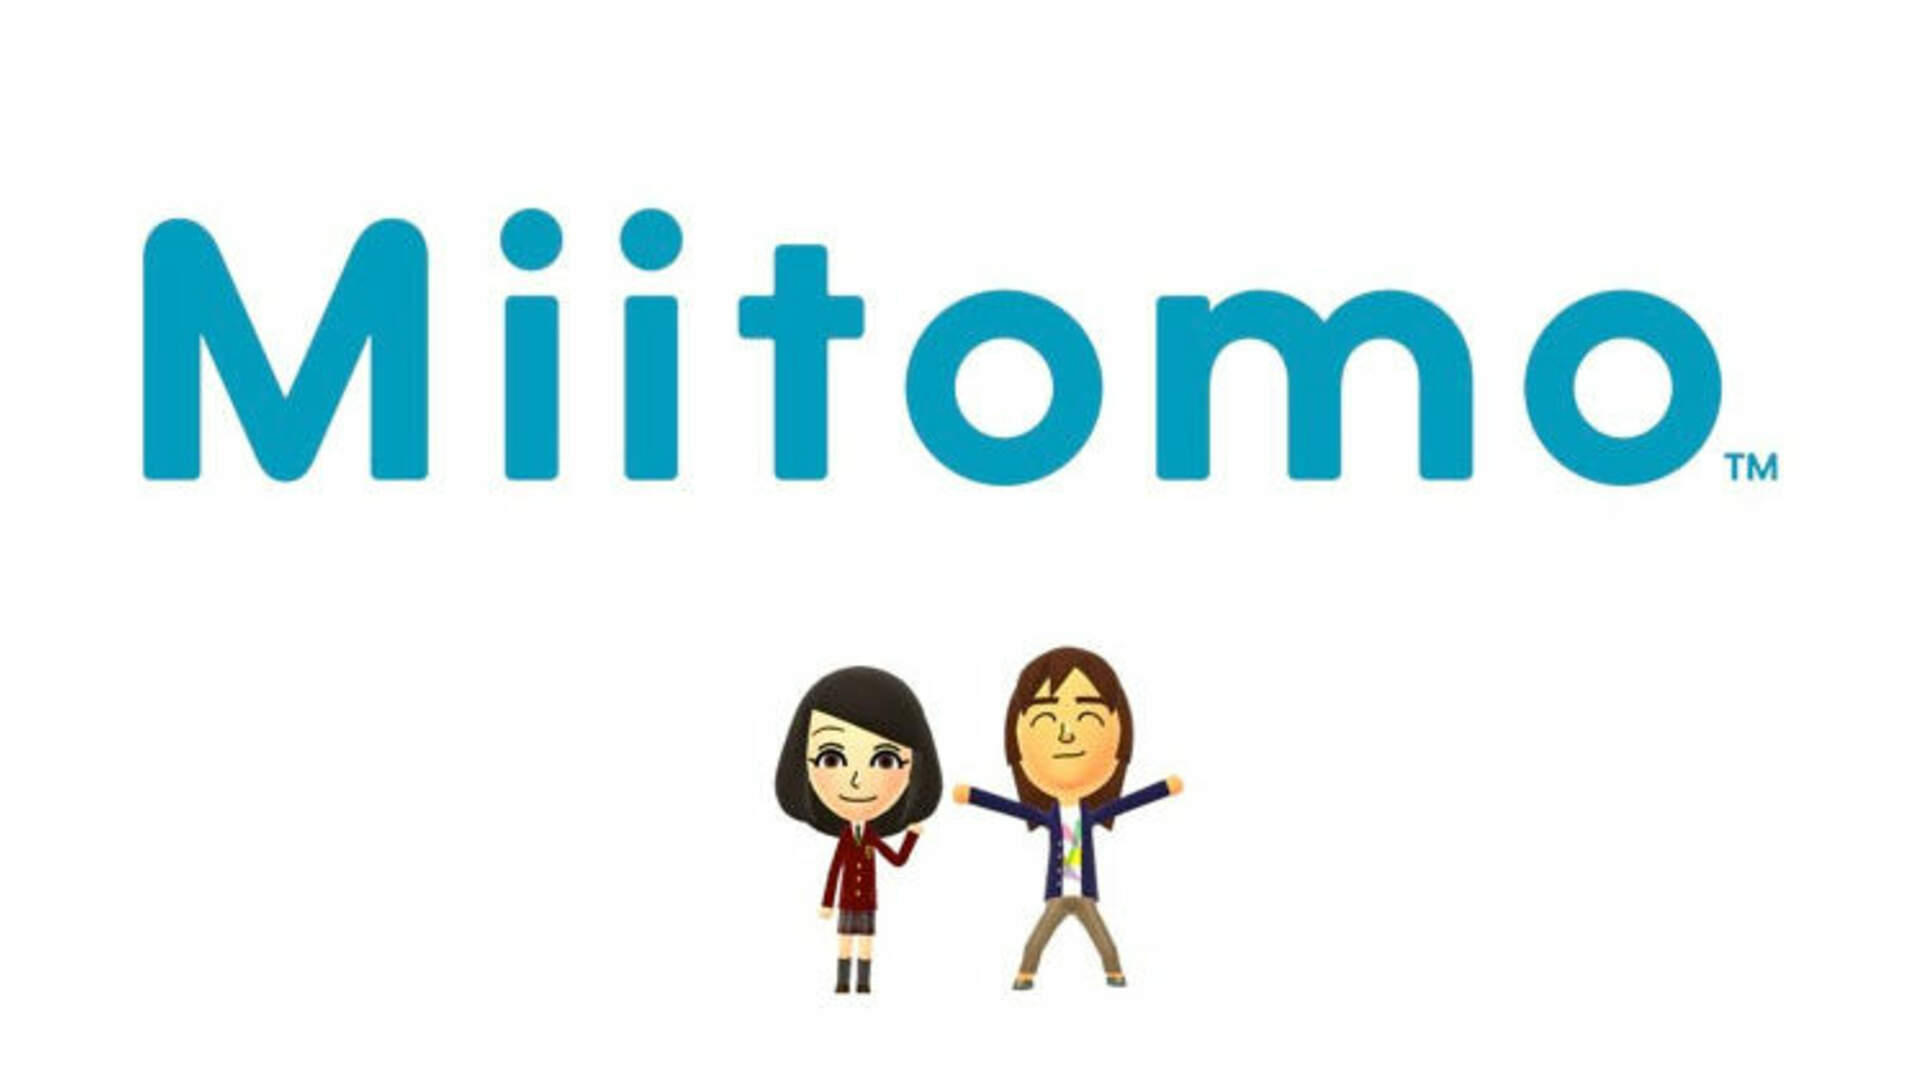 Miitomo Registration is Open, But Something's Missing